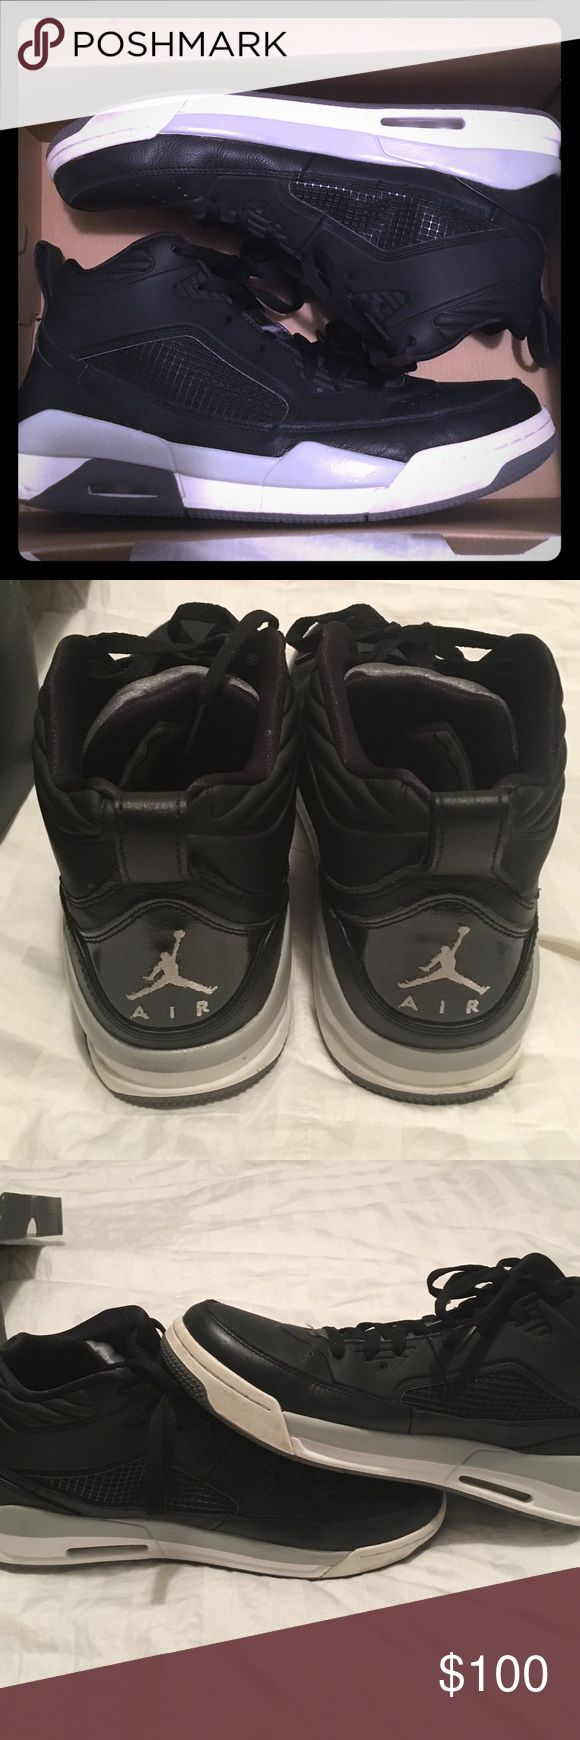 Men's Jordan Flight Size 12 Men's Jordan Flight Size 12, good condition, comfortable shoe, great for any look and style. Jordan Shoes Sneakers